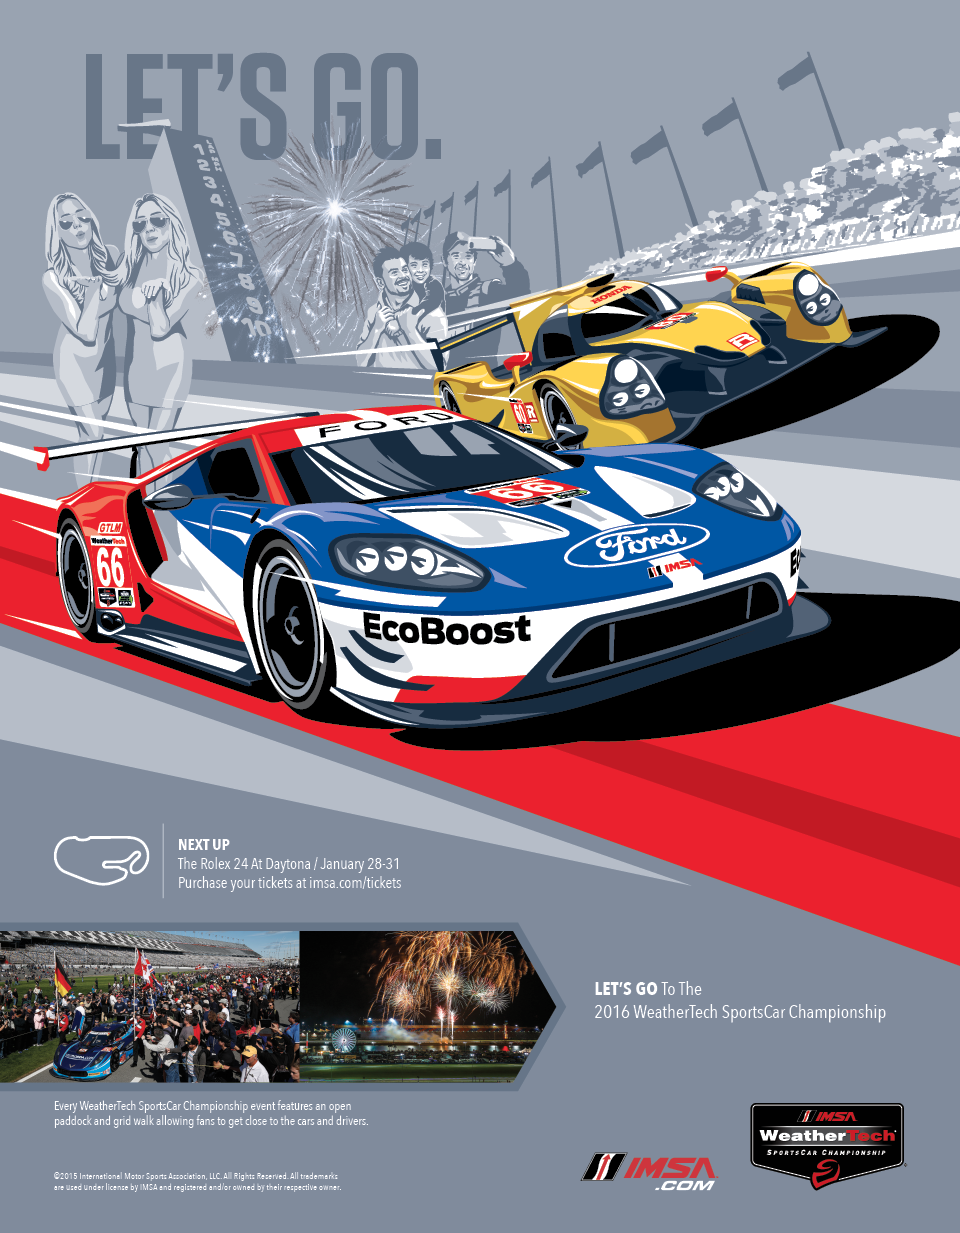 COMMUNICATIONS - 2016 WeatherTech Championship  CLIENT - IMSA  Television, print, online advertising campaign and creative